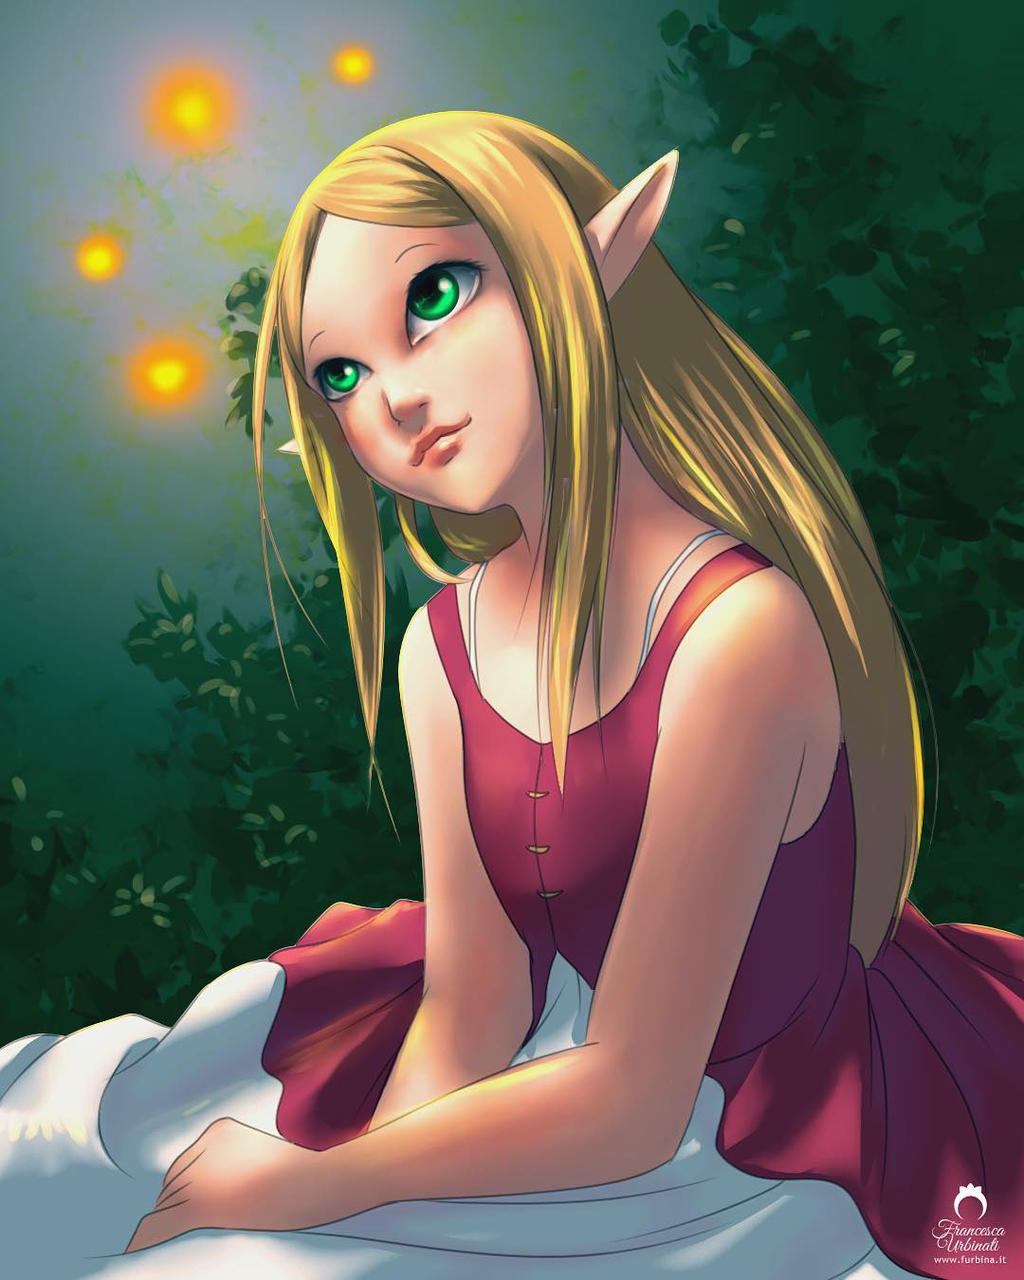 Legend of Zelda: Young Zelda by nime080